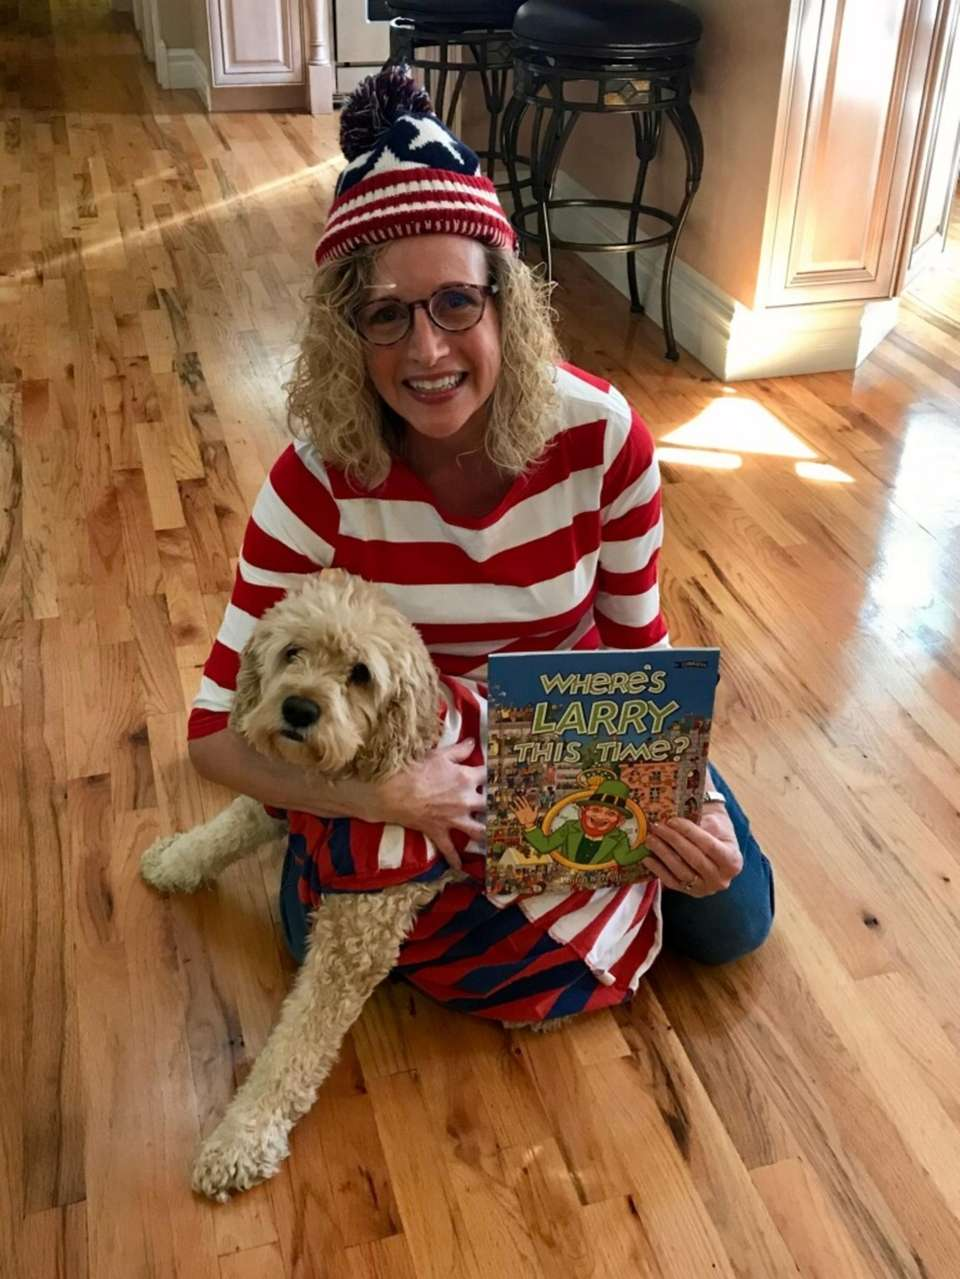 Where?s Waldo and Waldog - Happy Howloween!